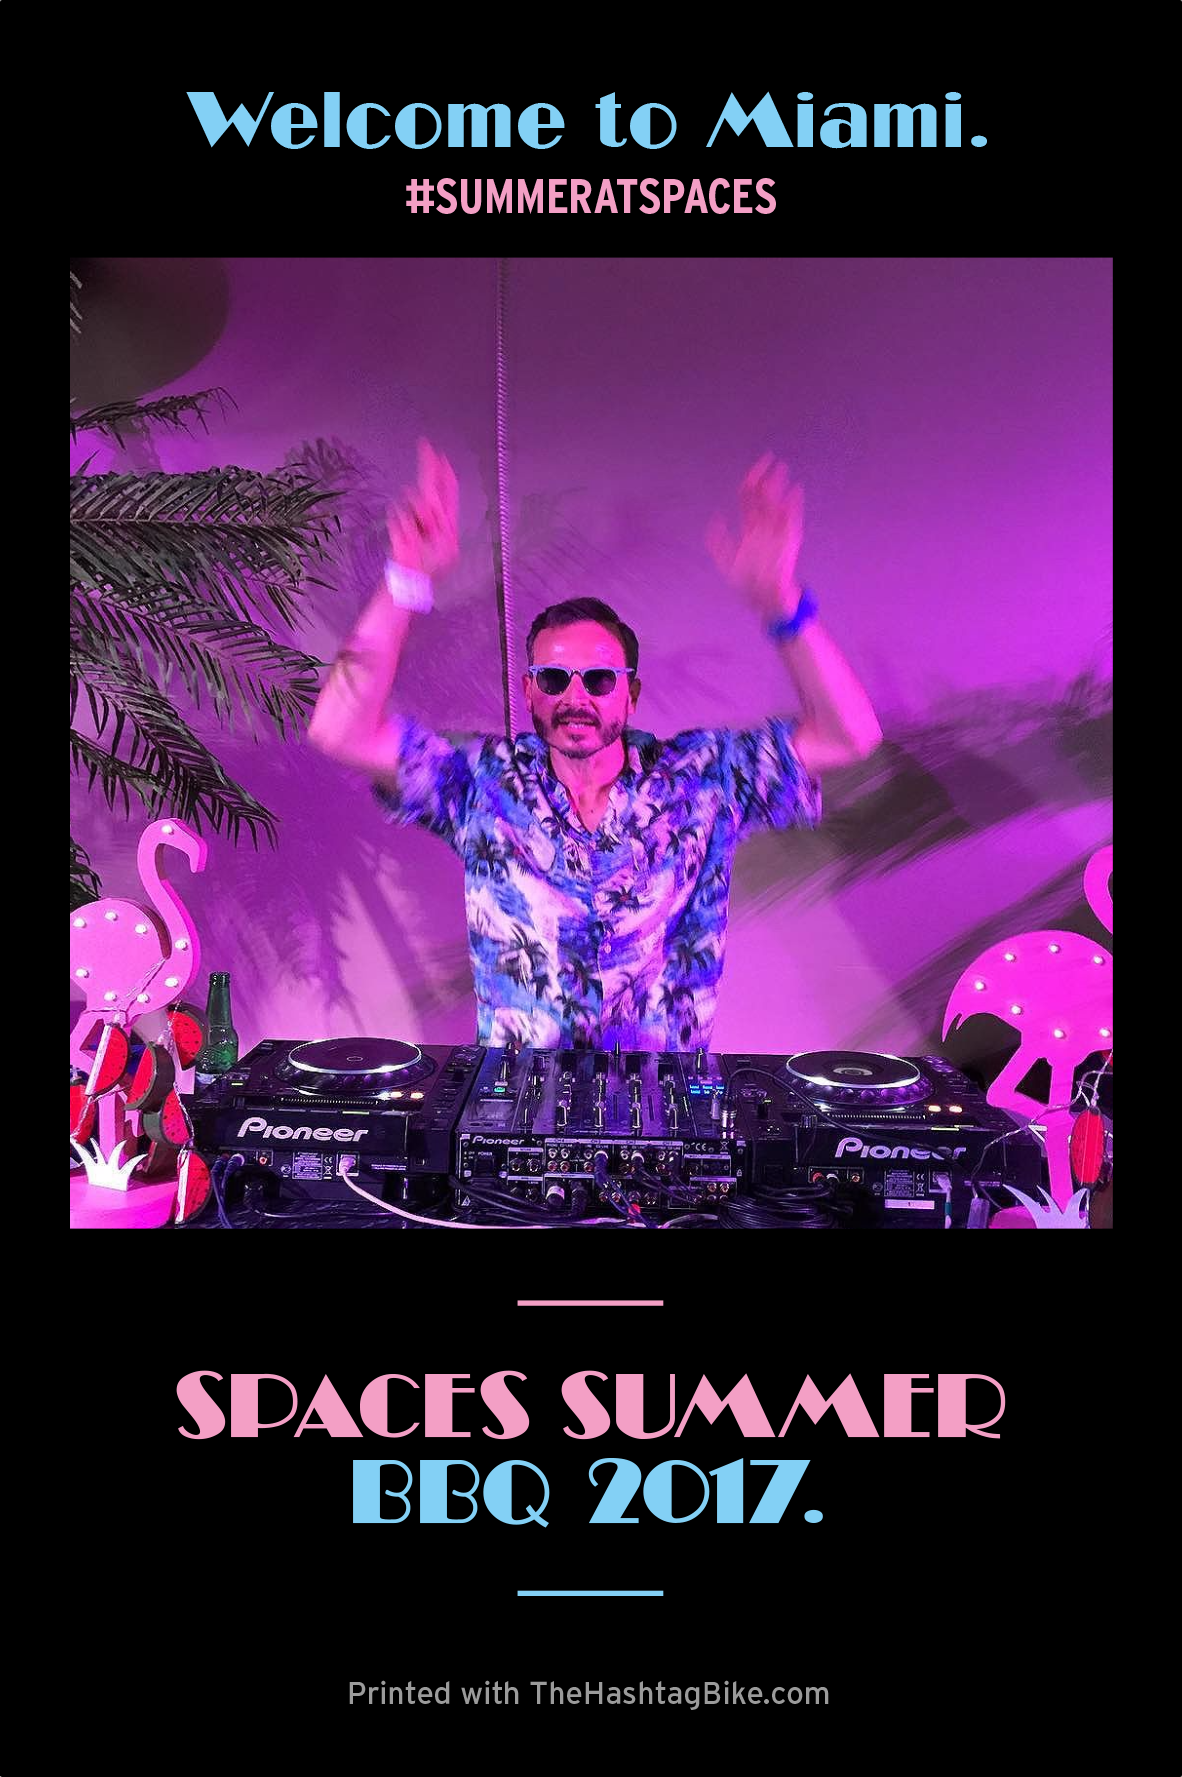 summeratspaces_thehashtagbike2.png